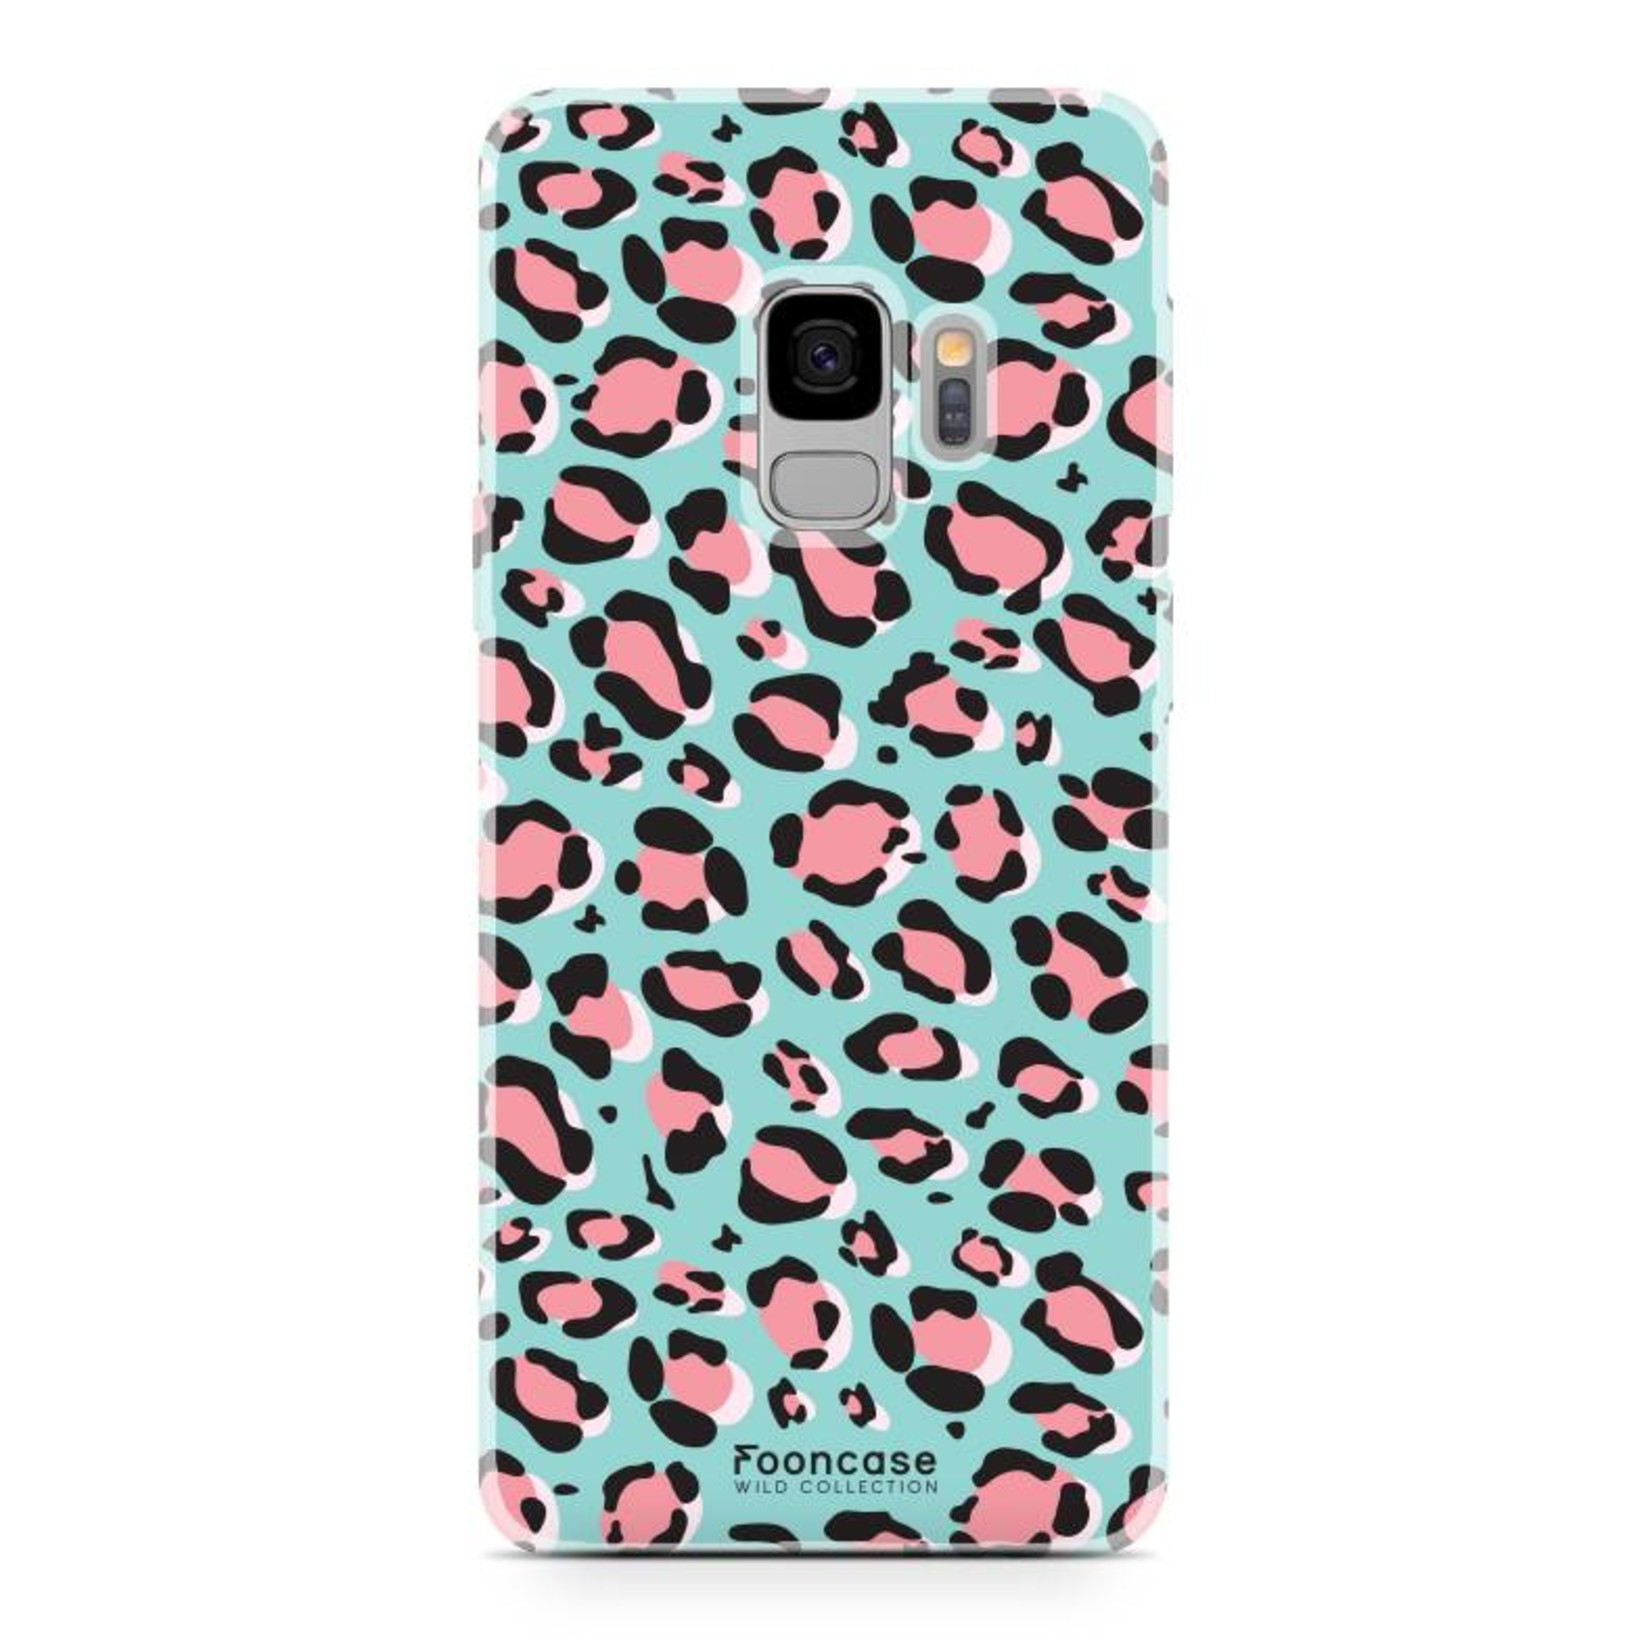 FOONCASE Samsung Galaxy S9 hoesje TPU Soft Case - Back Cover - WILD COLLECTION / Luipaard / Leopard print / Blauw